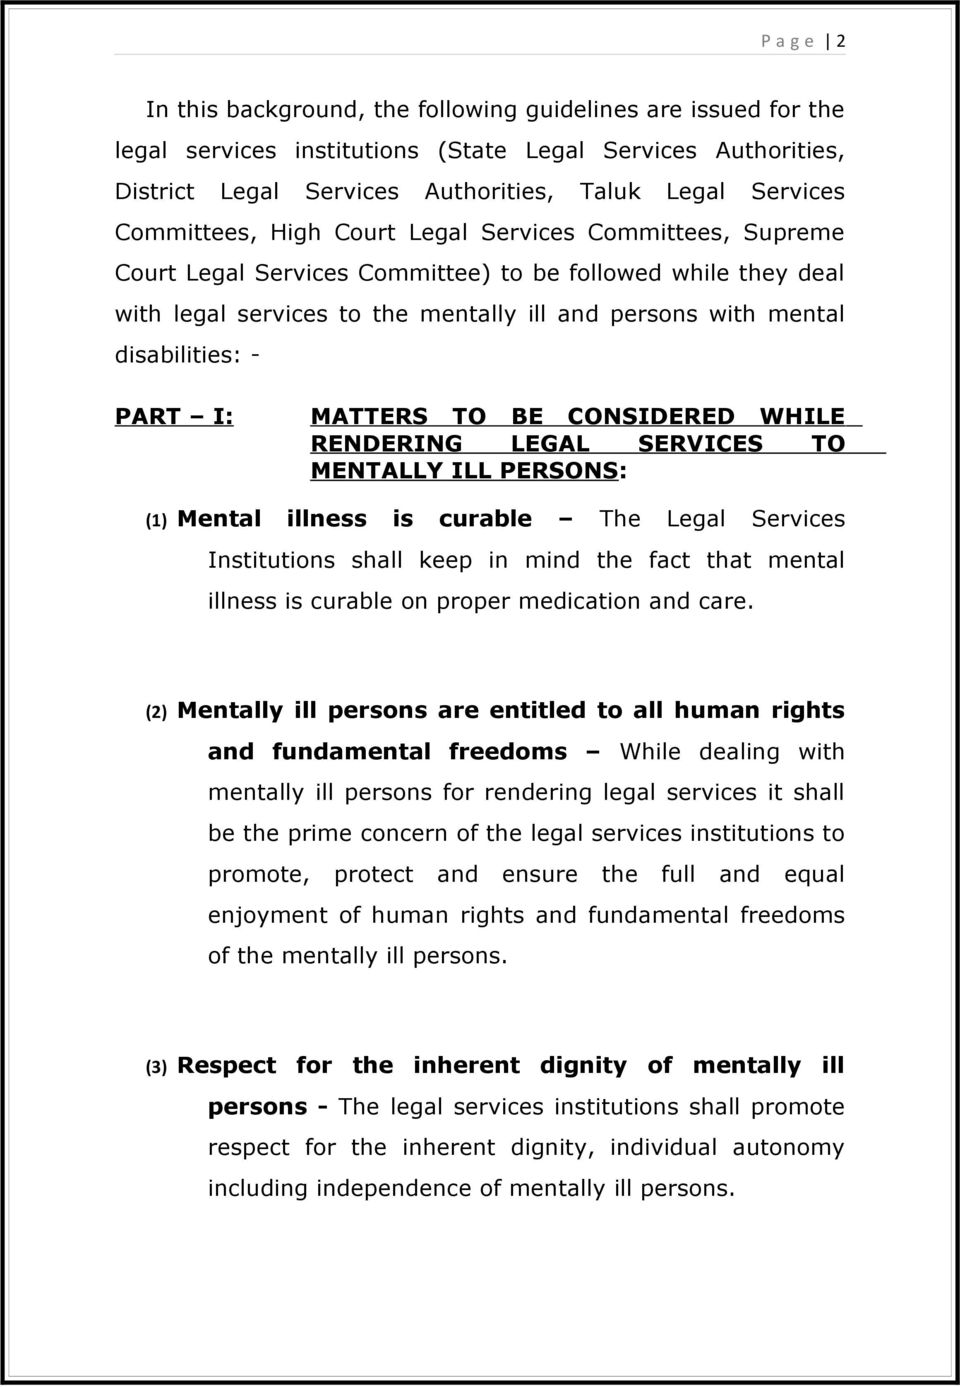 - PART I: MATTERS TO BE CONSIDERED WHILE RENDERING LEGAL SERVICES TO MENTALLY ILL PERSONS: (1) Mental illness is curable The Legal Services Institutions shall keep in mind the fact that mental